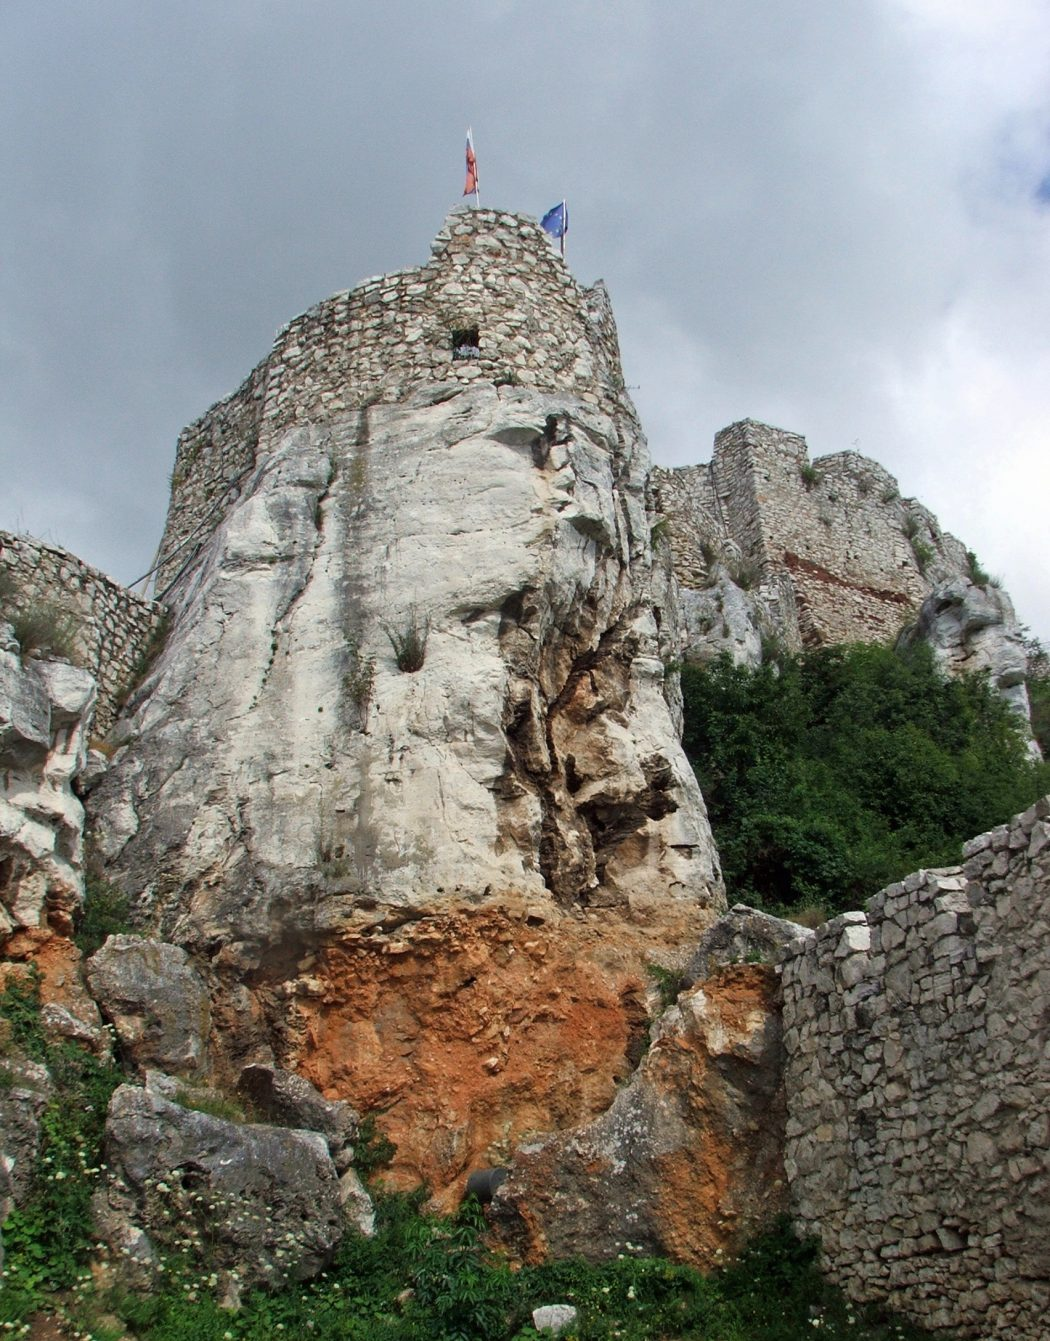 Spis_Castle_on_the_rock Top 10 Biggest Castles in History